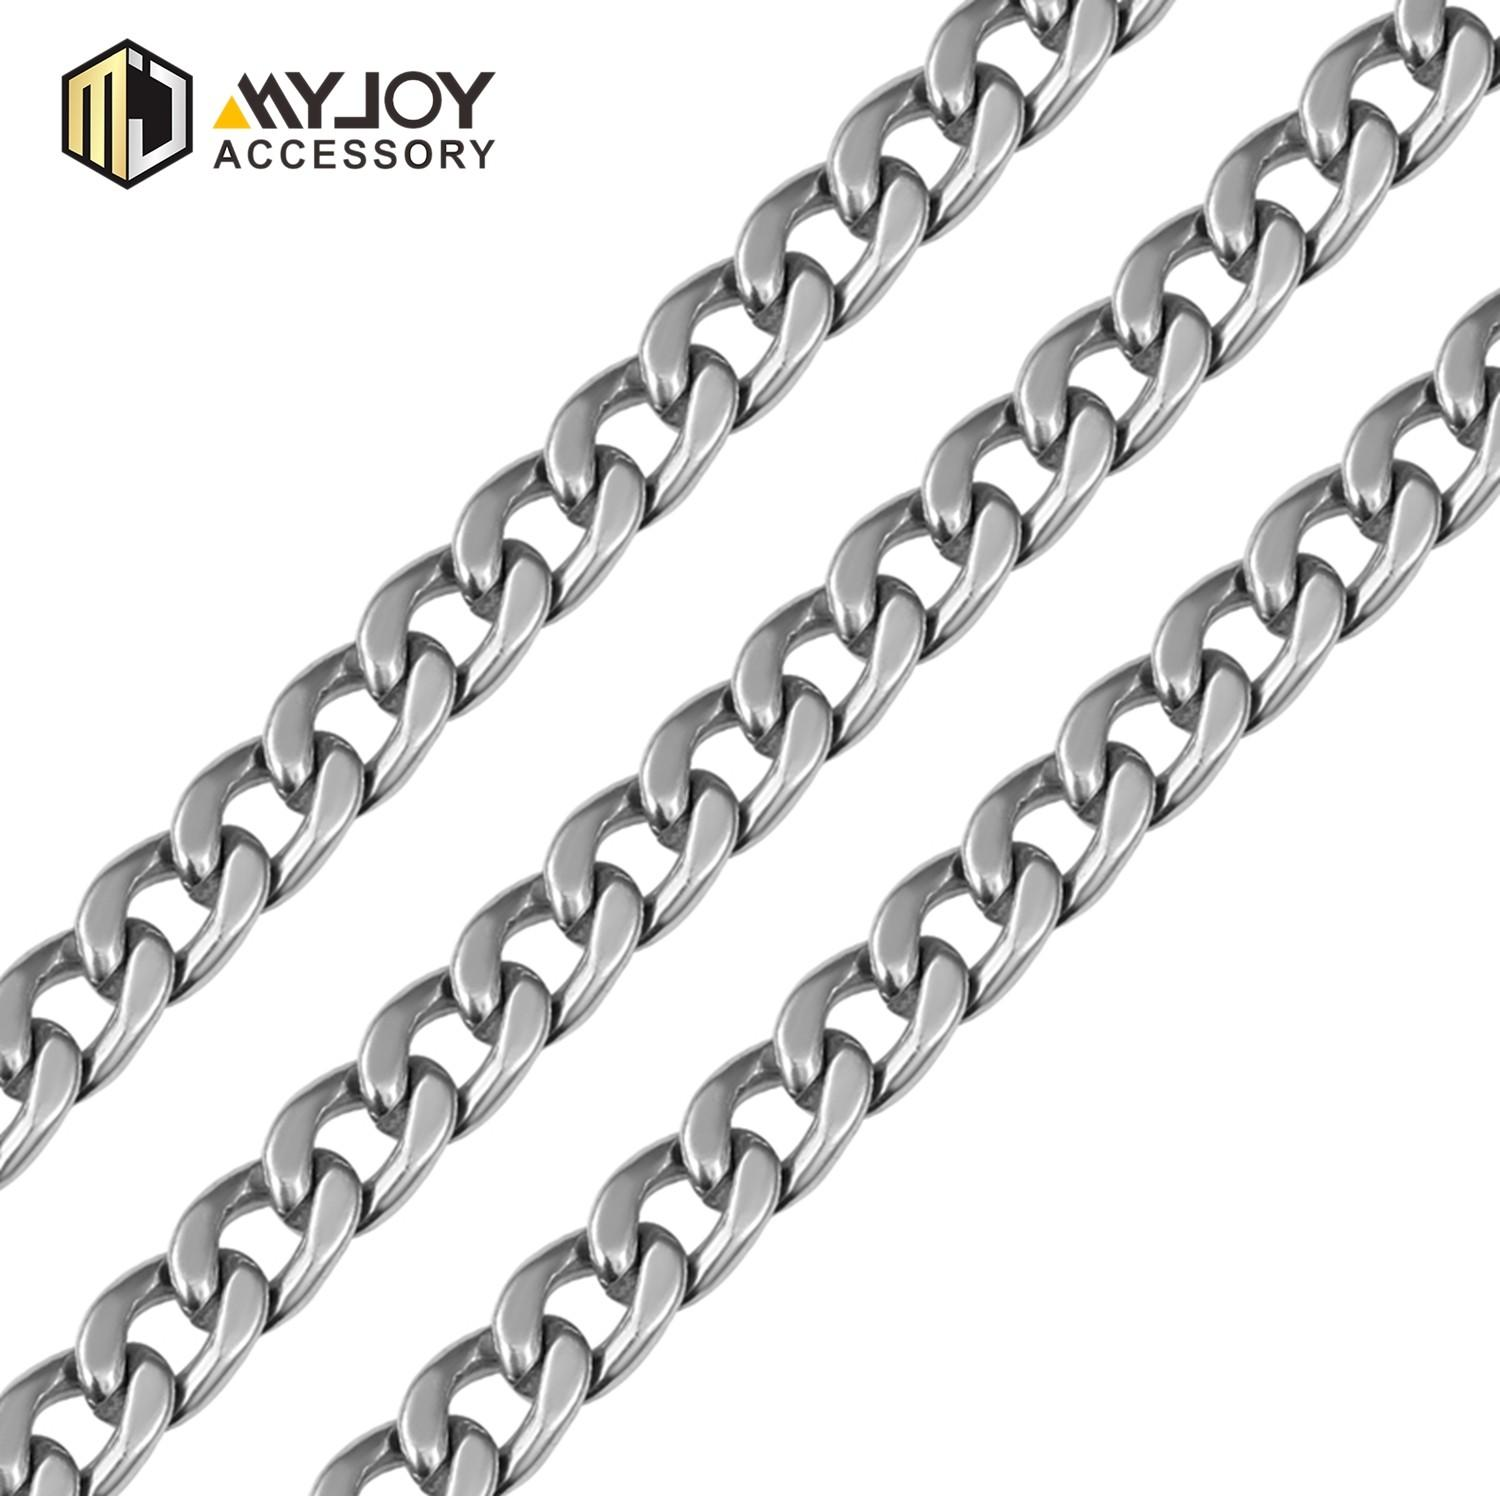 High-quality purse chain chain for business for handbag